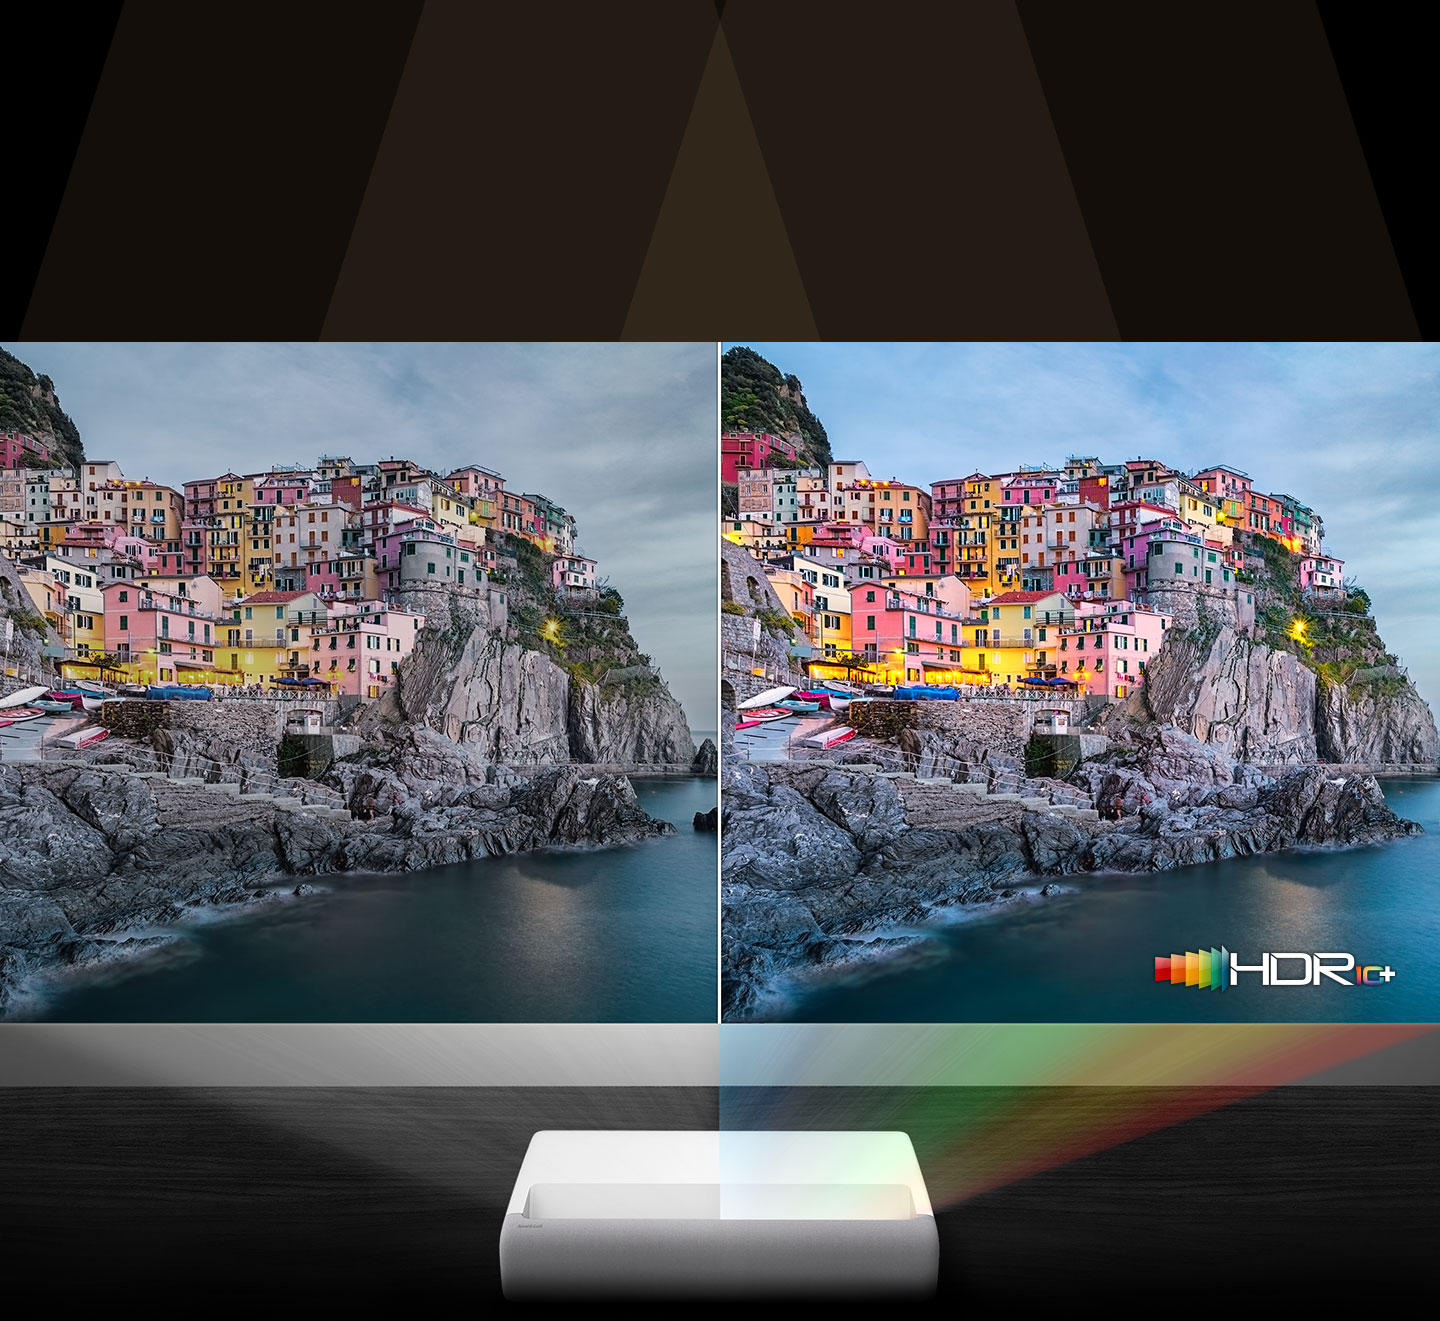 Using laser technology, The Premiere is showing two screens for comparing hdr 10 plus and to emphasize 4K image quality.